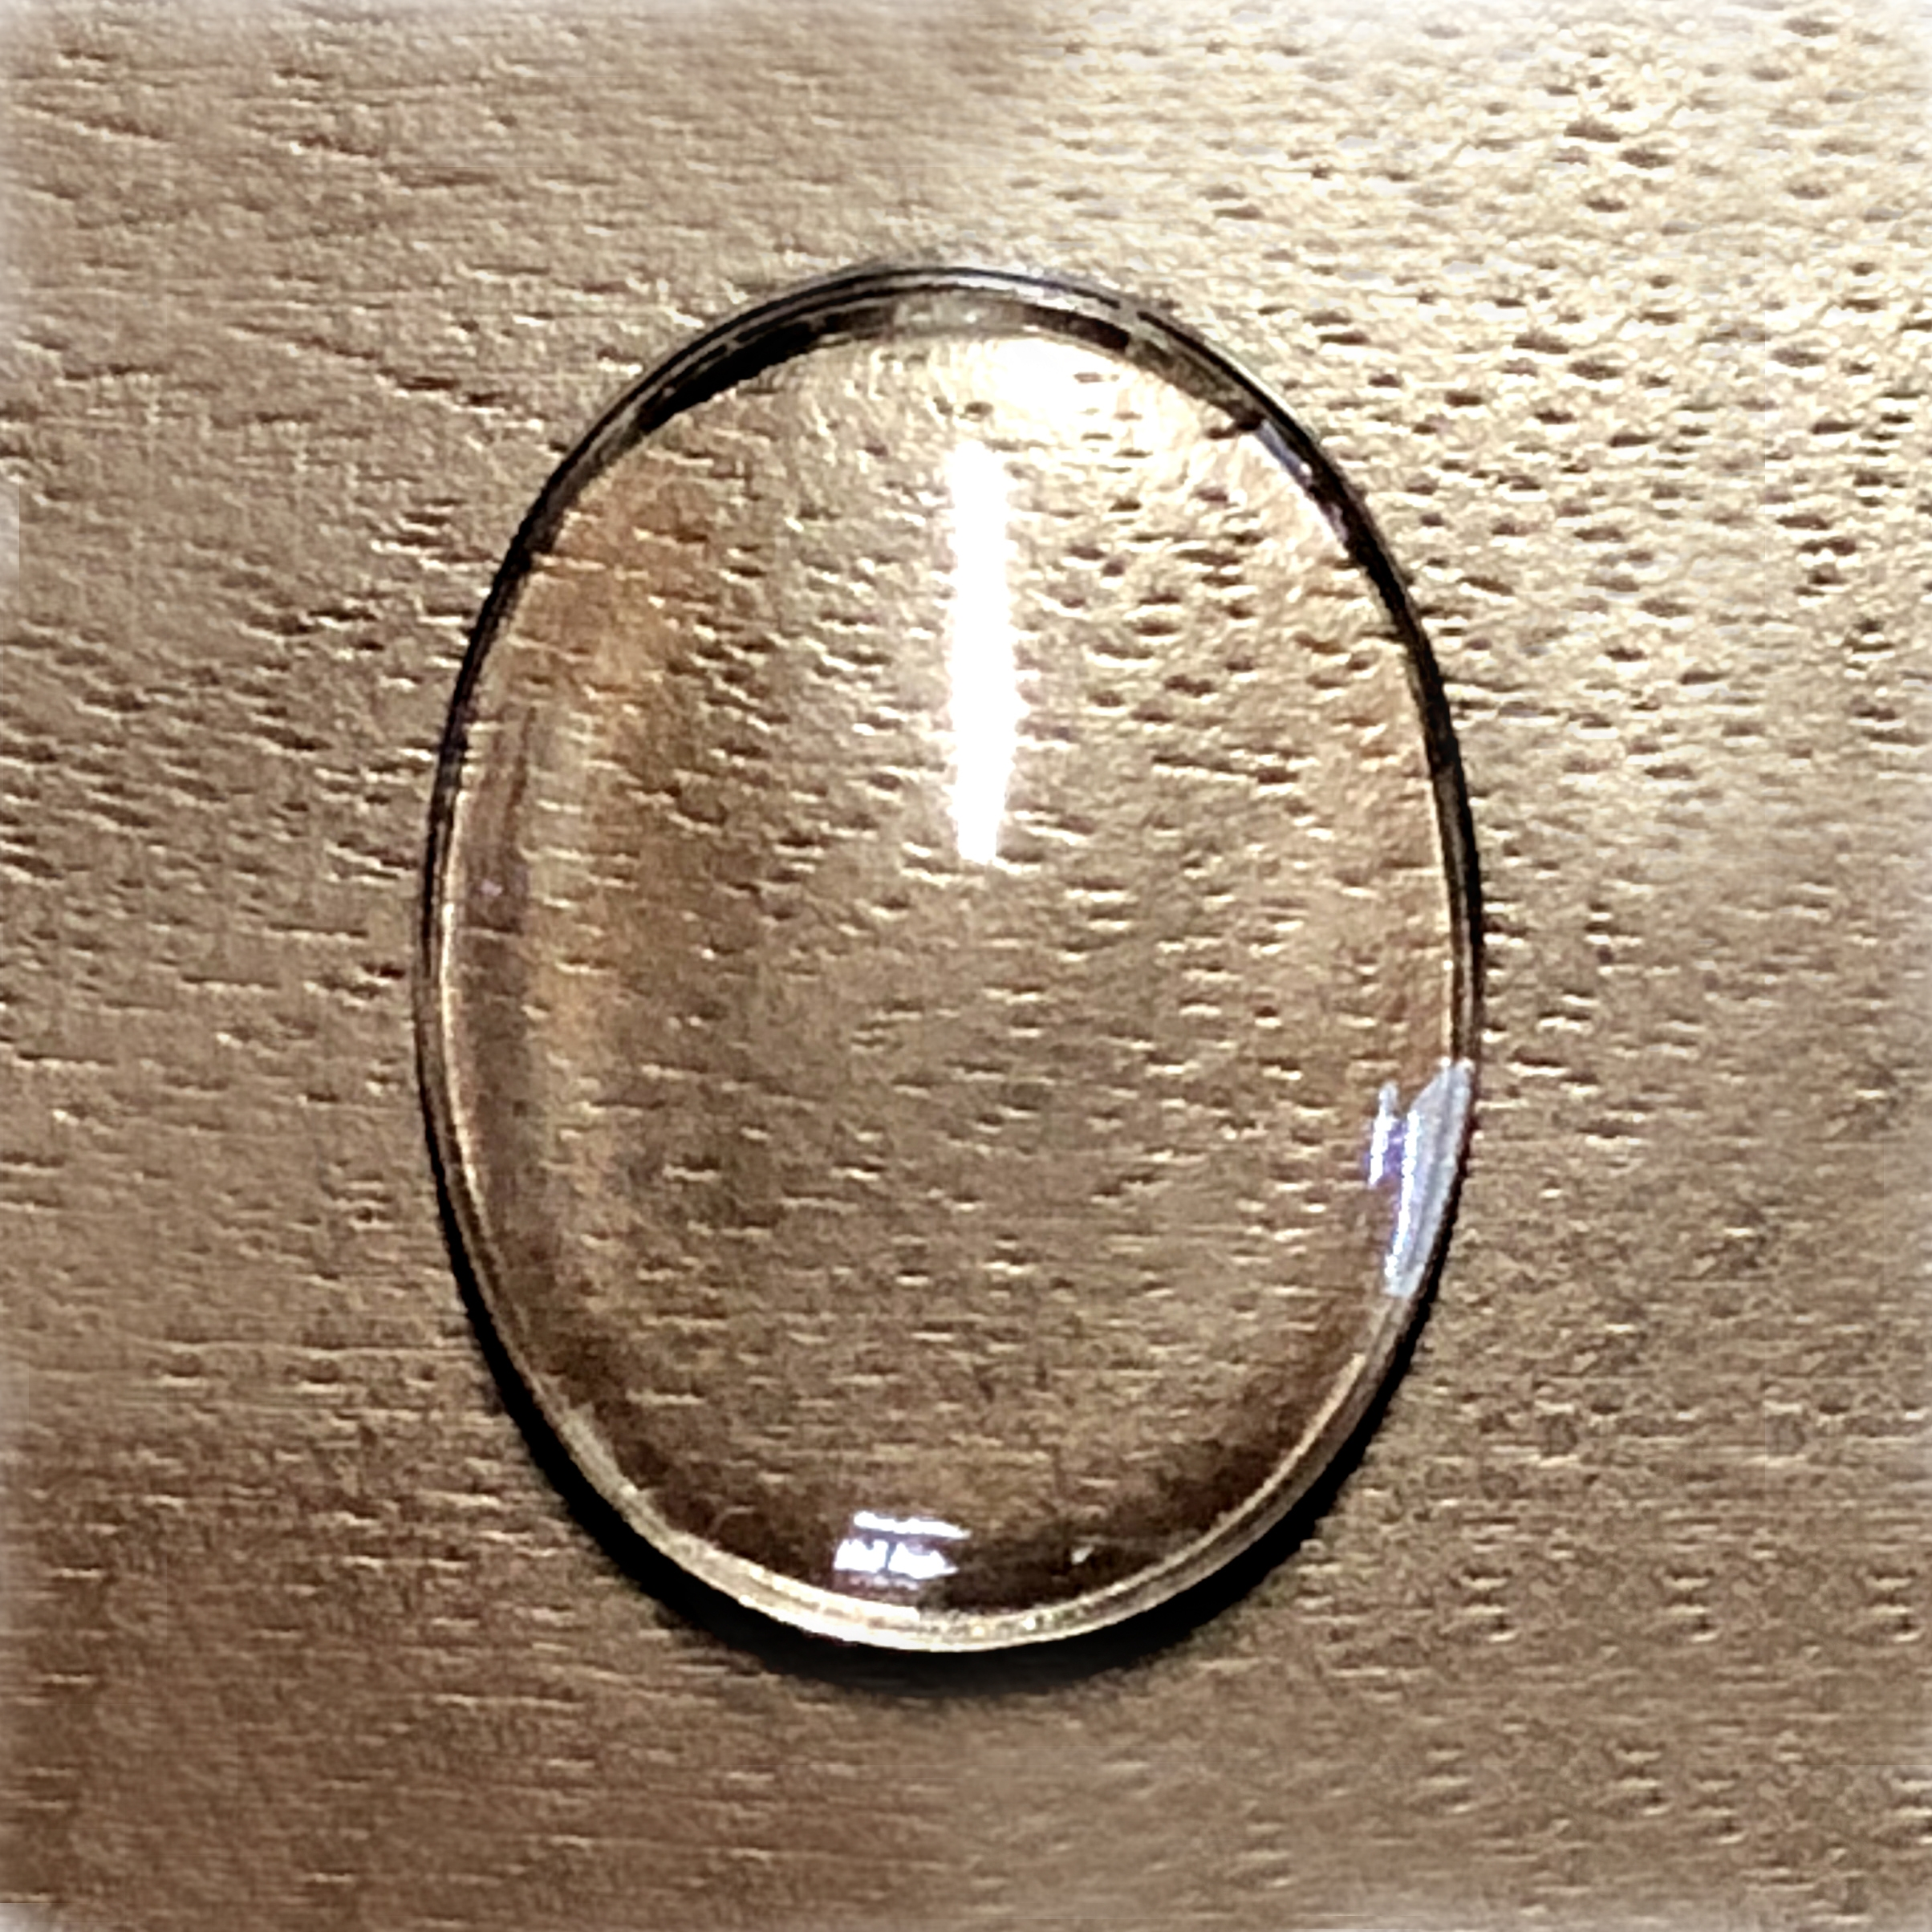 concave lens, plastic bubble lens, clear, 04868, concave bubble lens, jewelry making supplies, plastic lenses, 40x30mm lenses, jewelry making, vintage jewelry supplies, clear bubble lenses